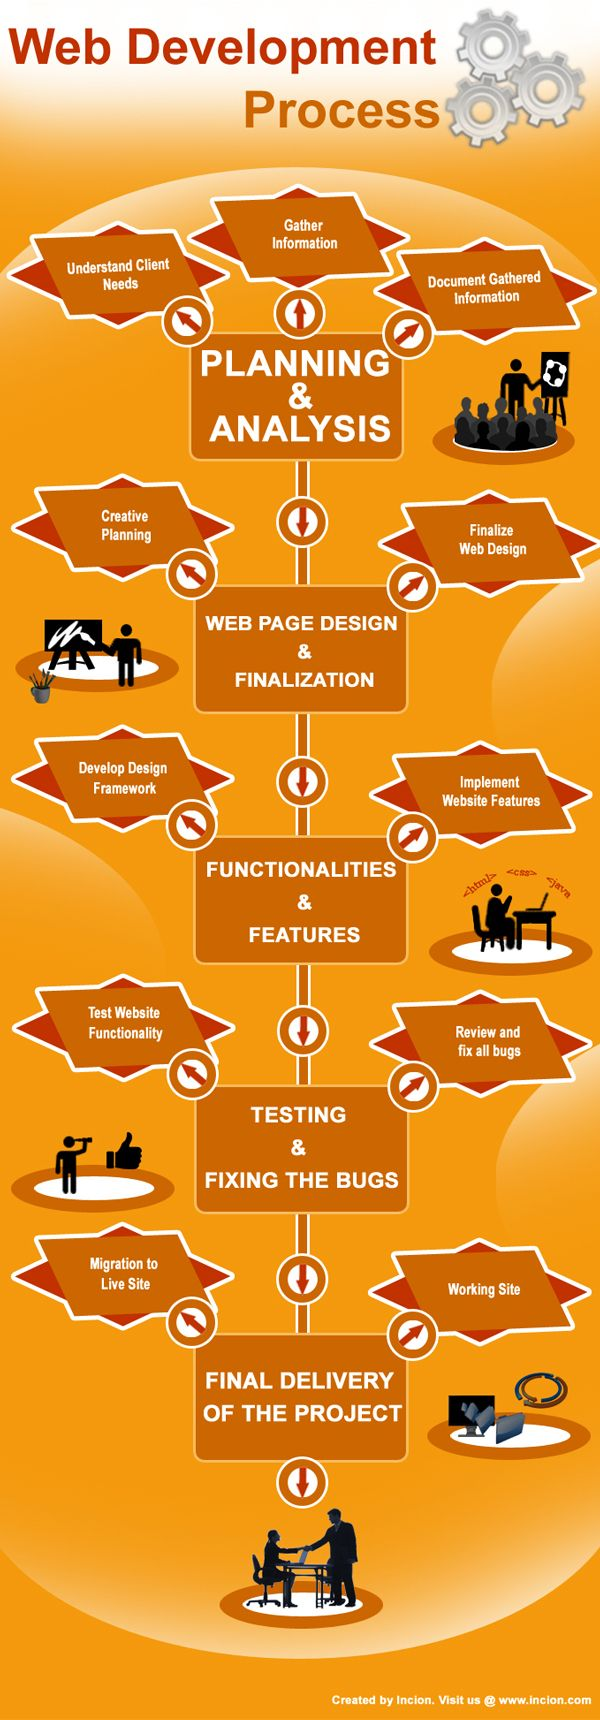 Web Development process needs to be managed carefully so that a website can be launched successfully. This Infographic explains Web Development Proces